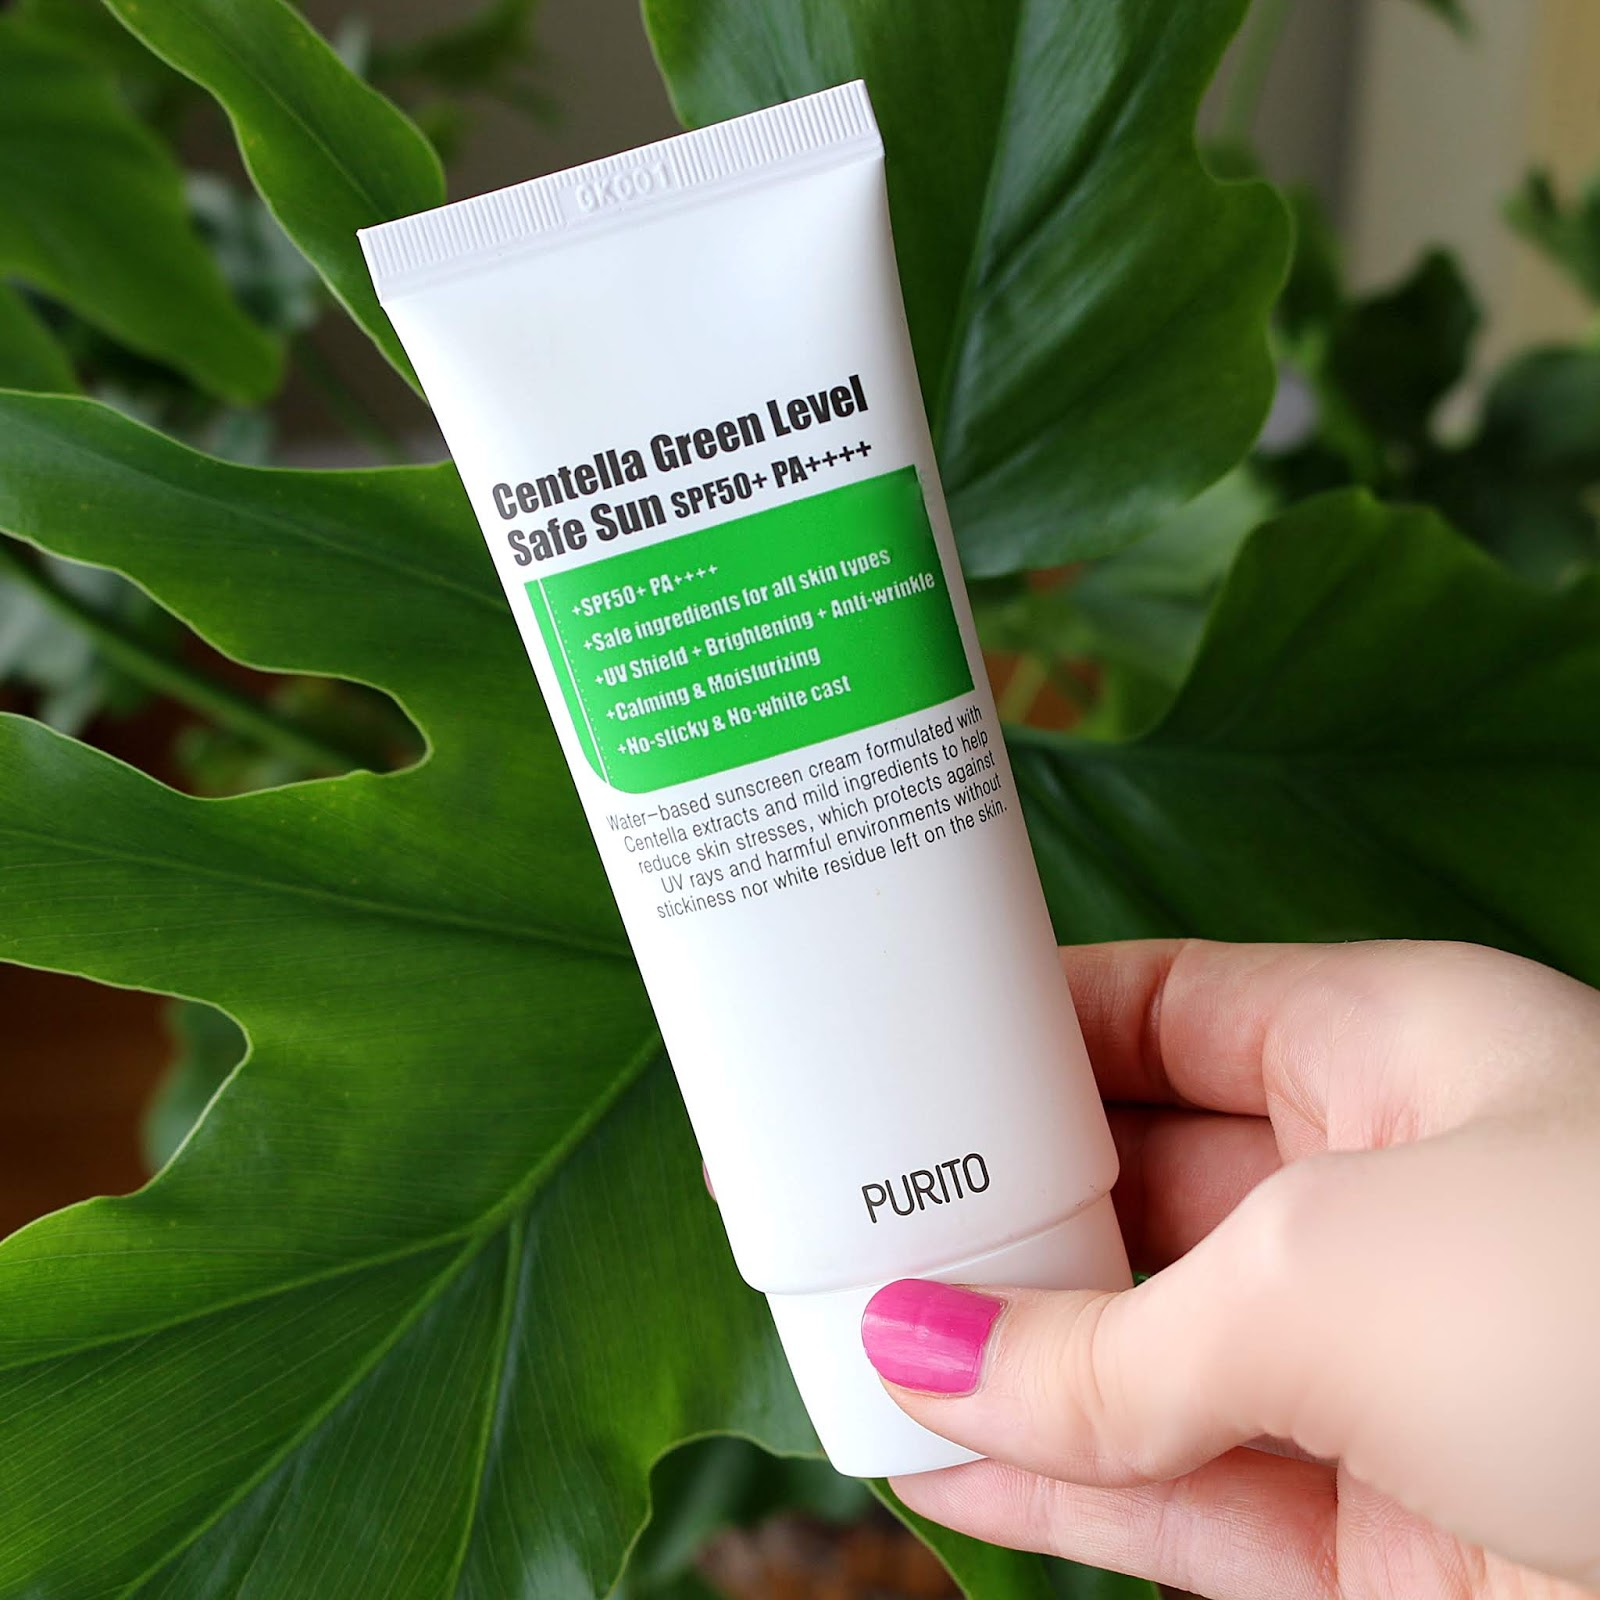 PURITO Centella Green Level Safe Sun Korean Skincare Review